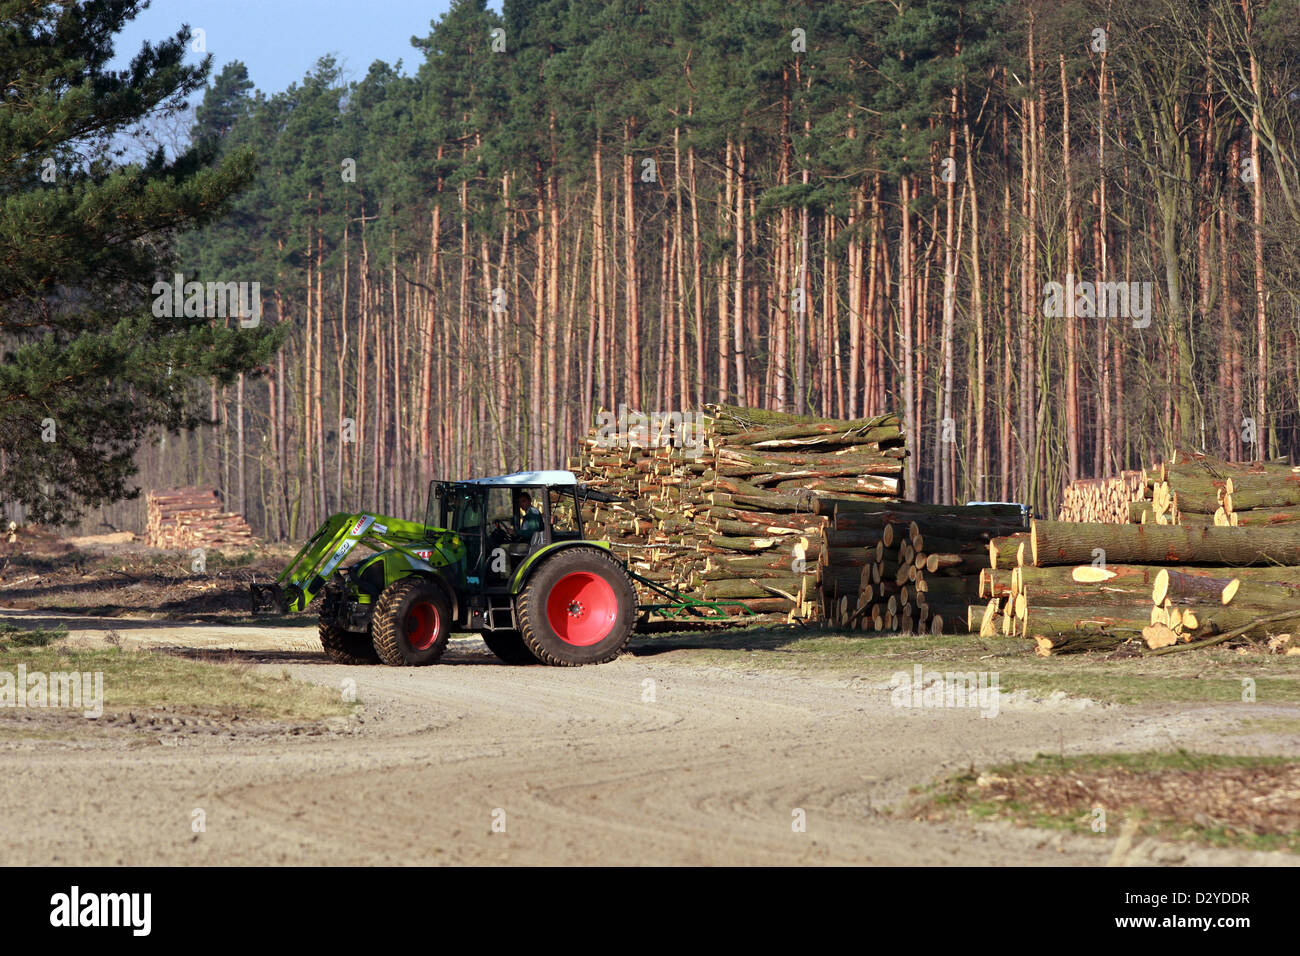 New Hagen, Germany, in front of tractor stacked Baumstaemmen - Stock Image